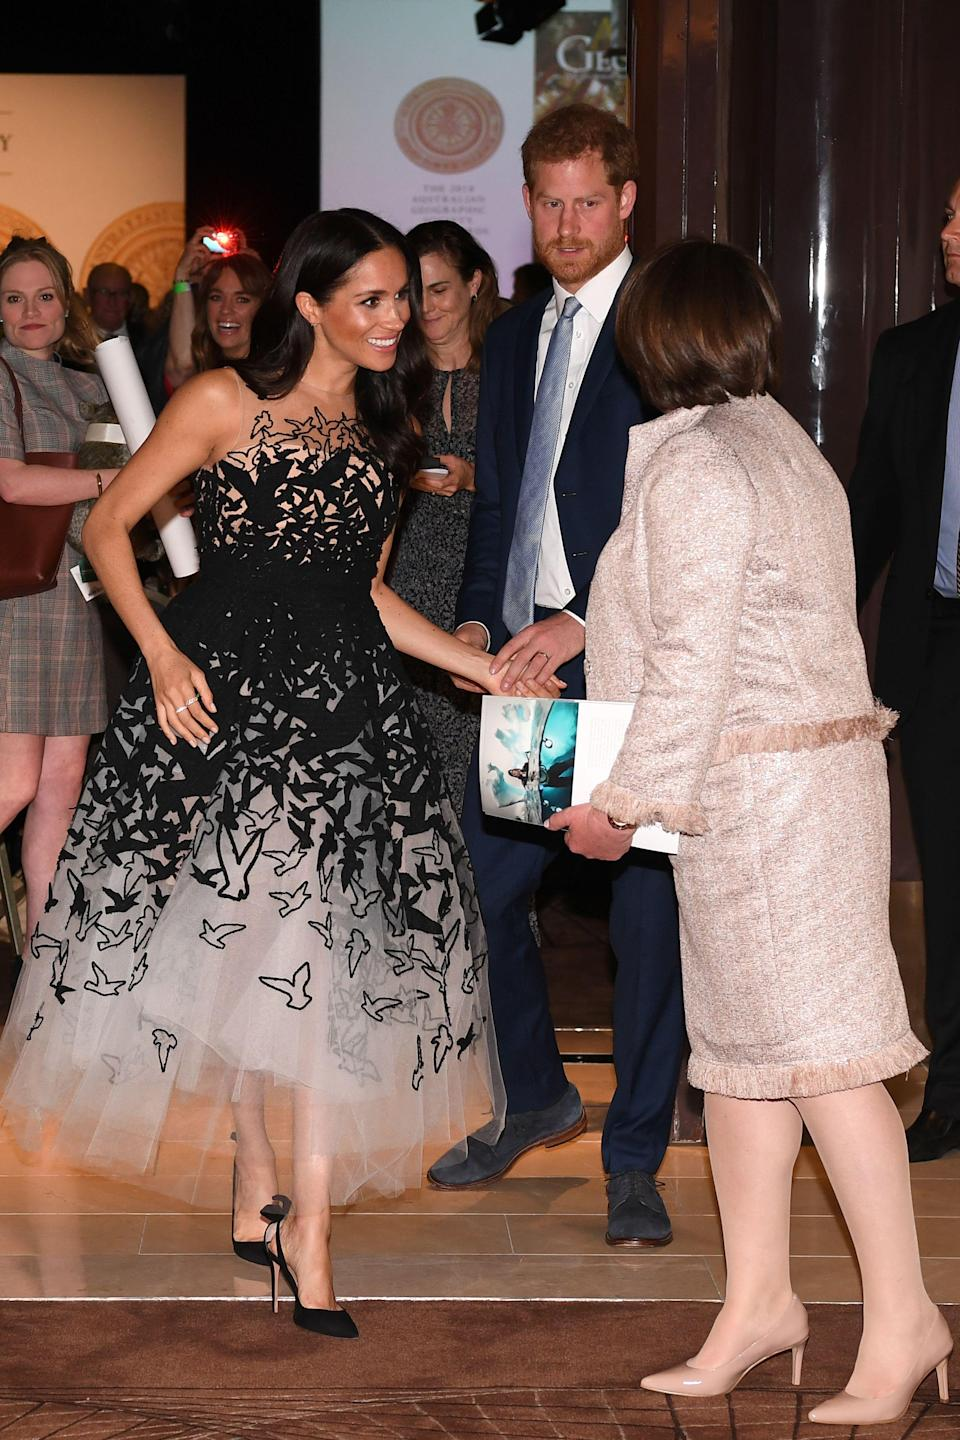 For a reception at the Australian Geographic Society Gala on October 26, the Duchess wore a frothy gown by Oscar de la Renta [Photo: Getty]